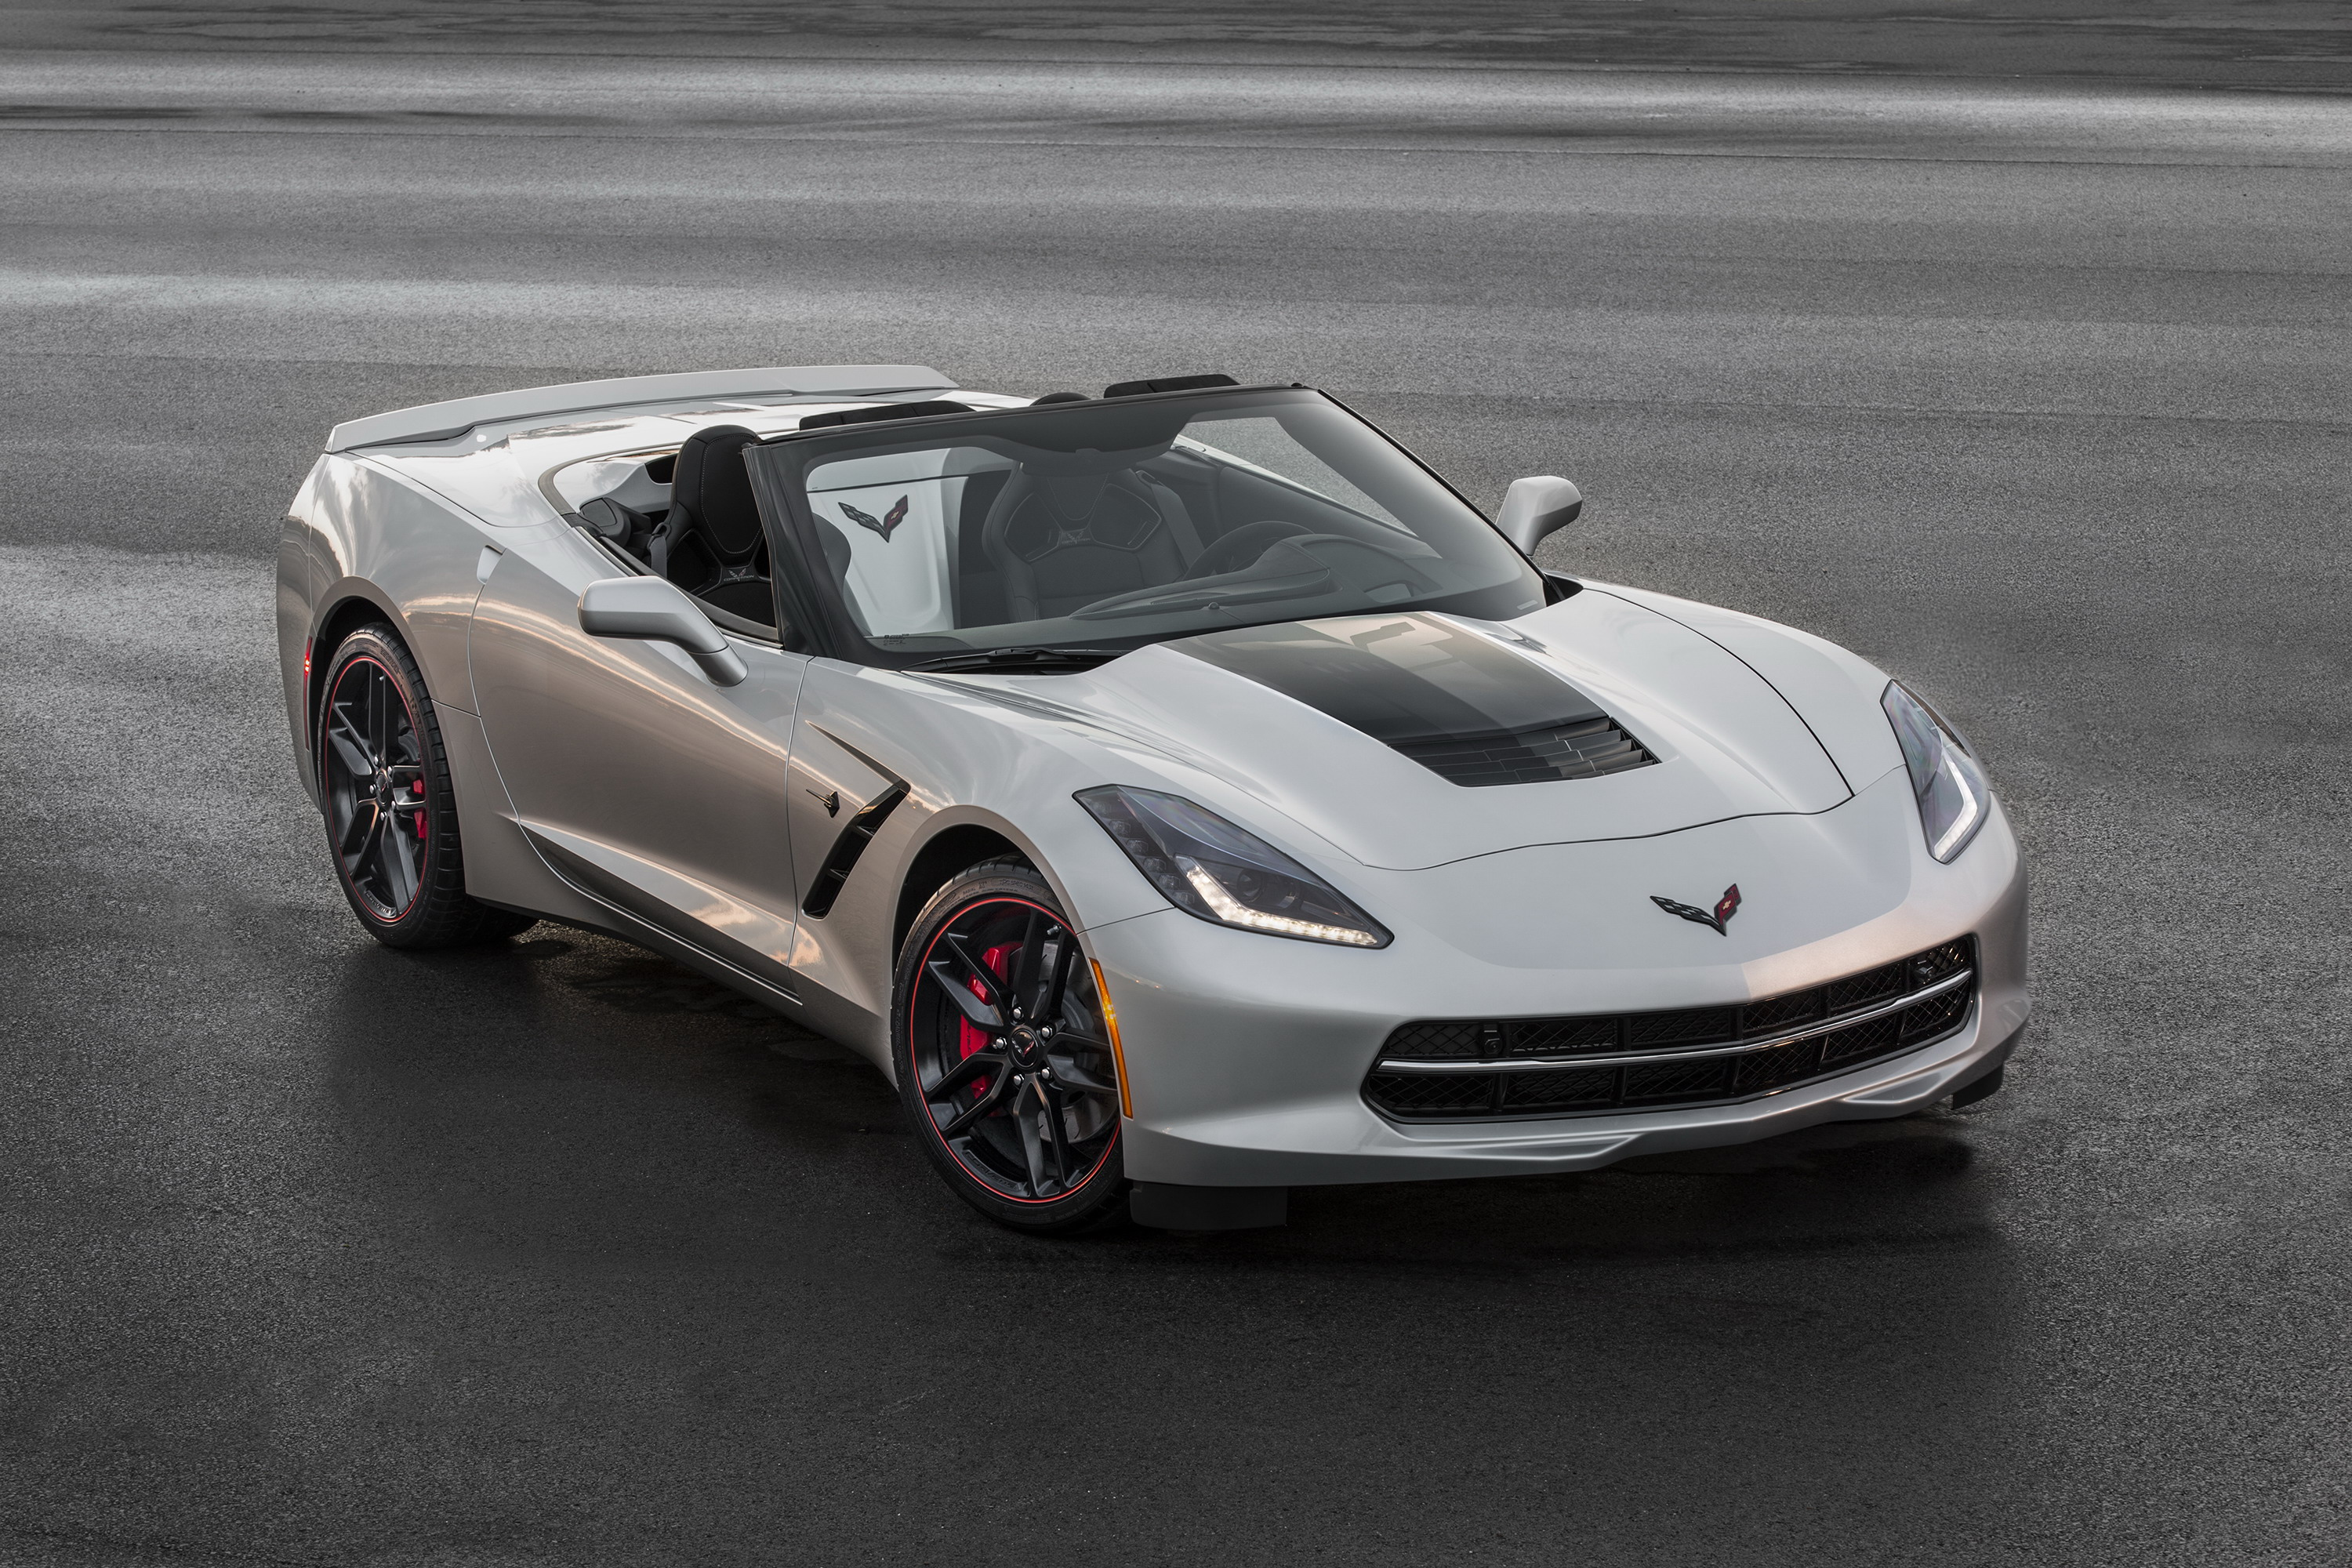 2016 Chevrolet Corvette Gets Updates, New Design Packages | Top Speed. »